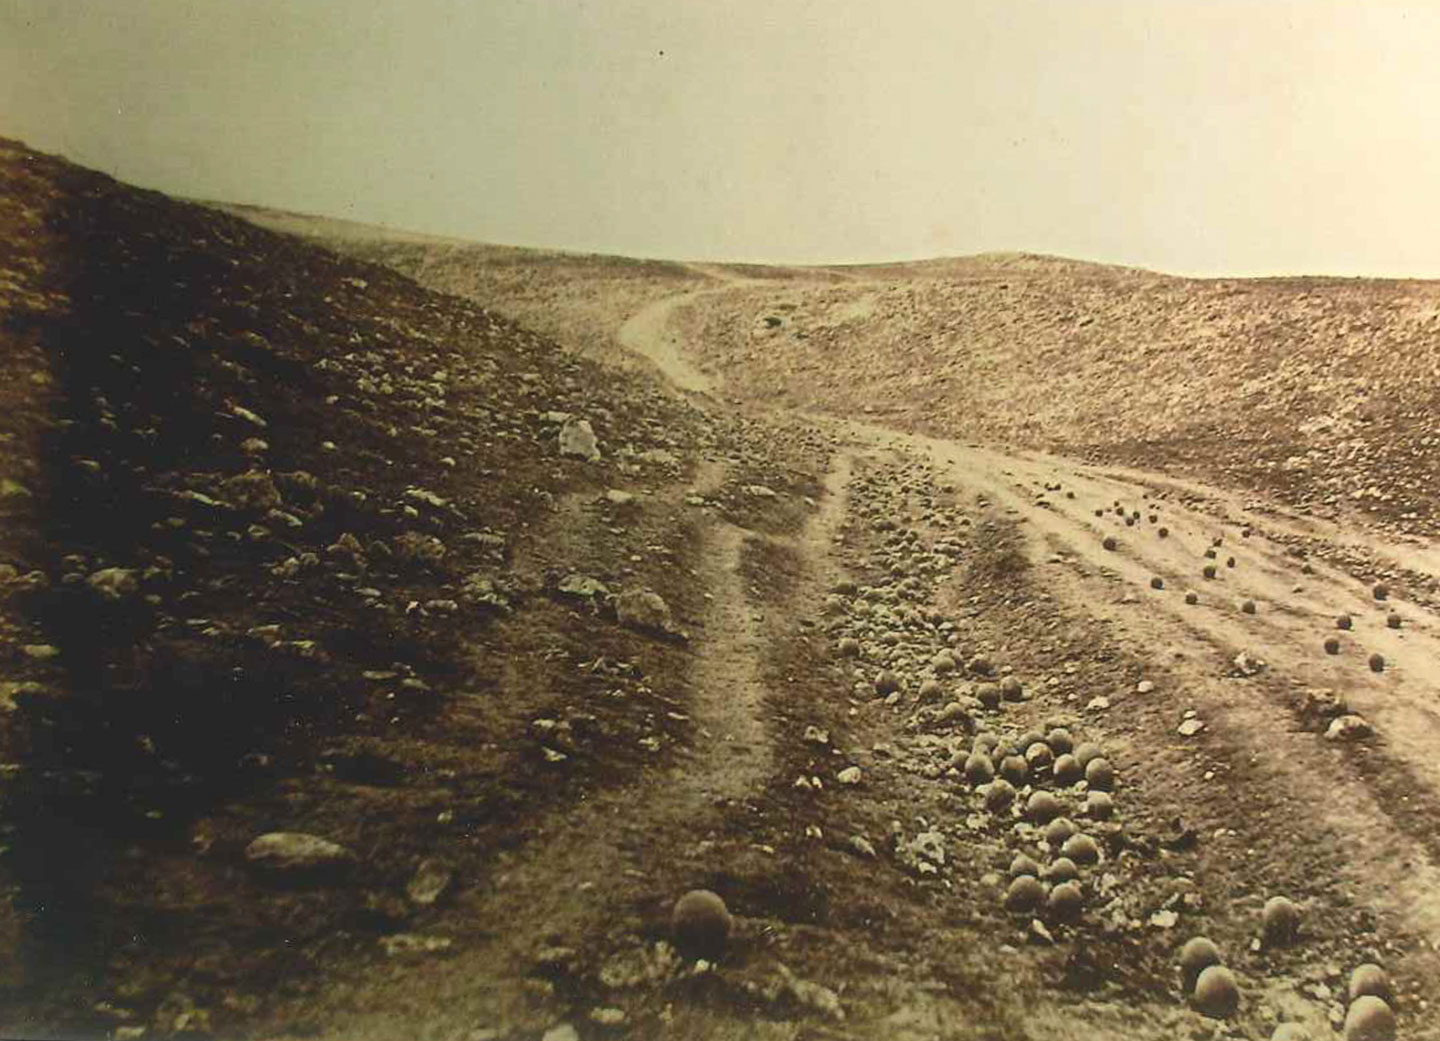 Roger Fenton, Shadow of the Valley of Death, 1855